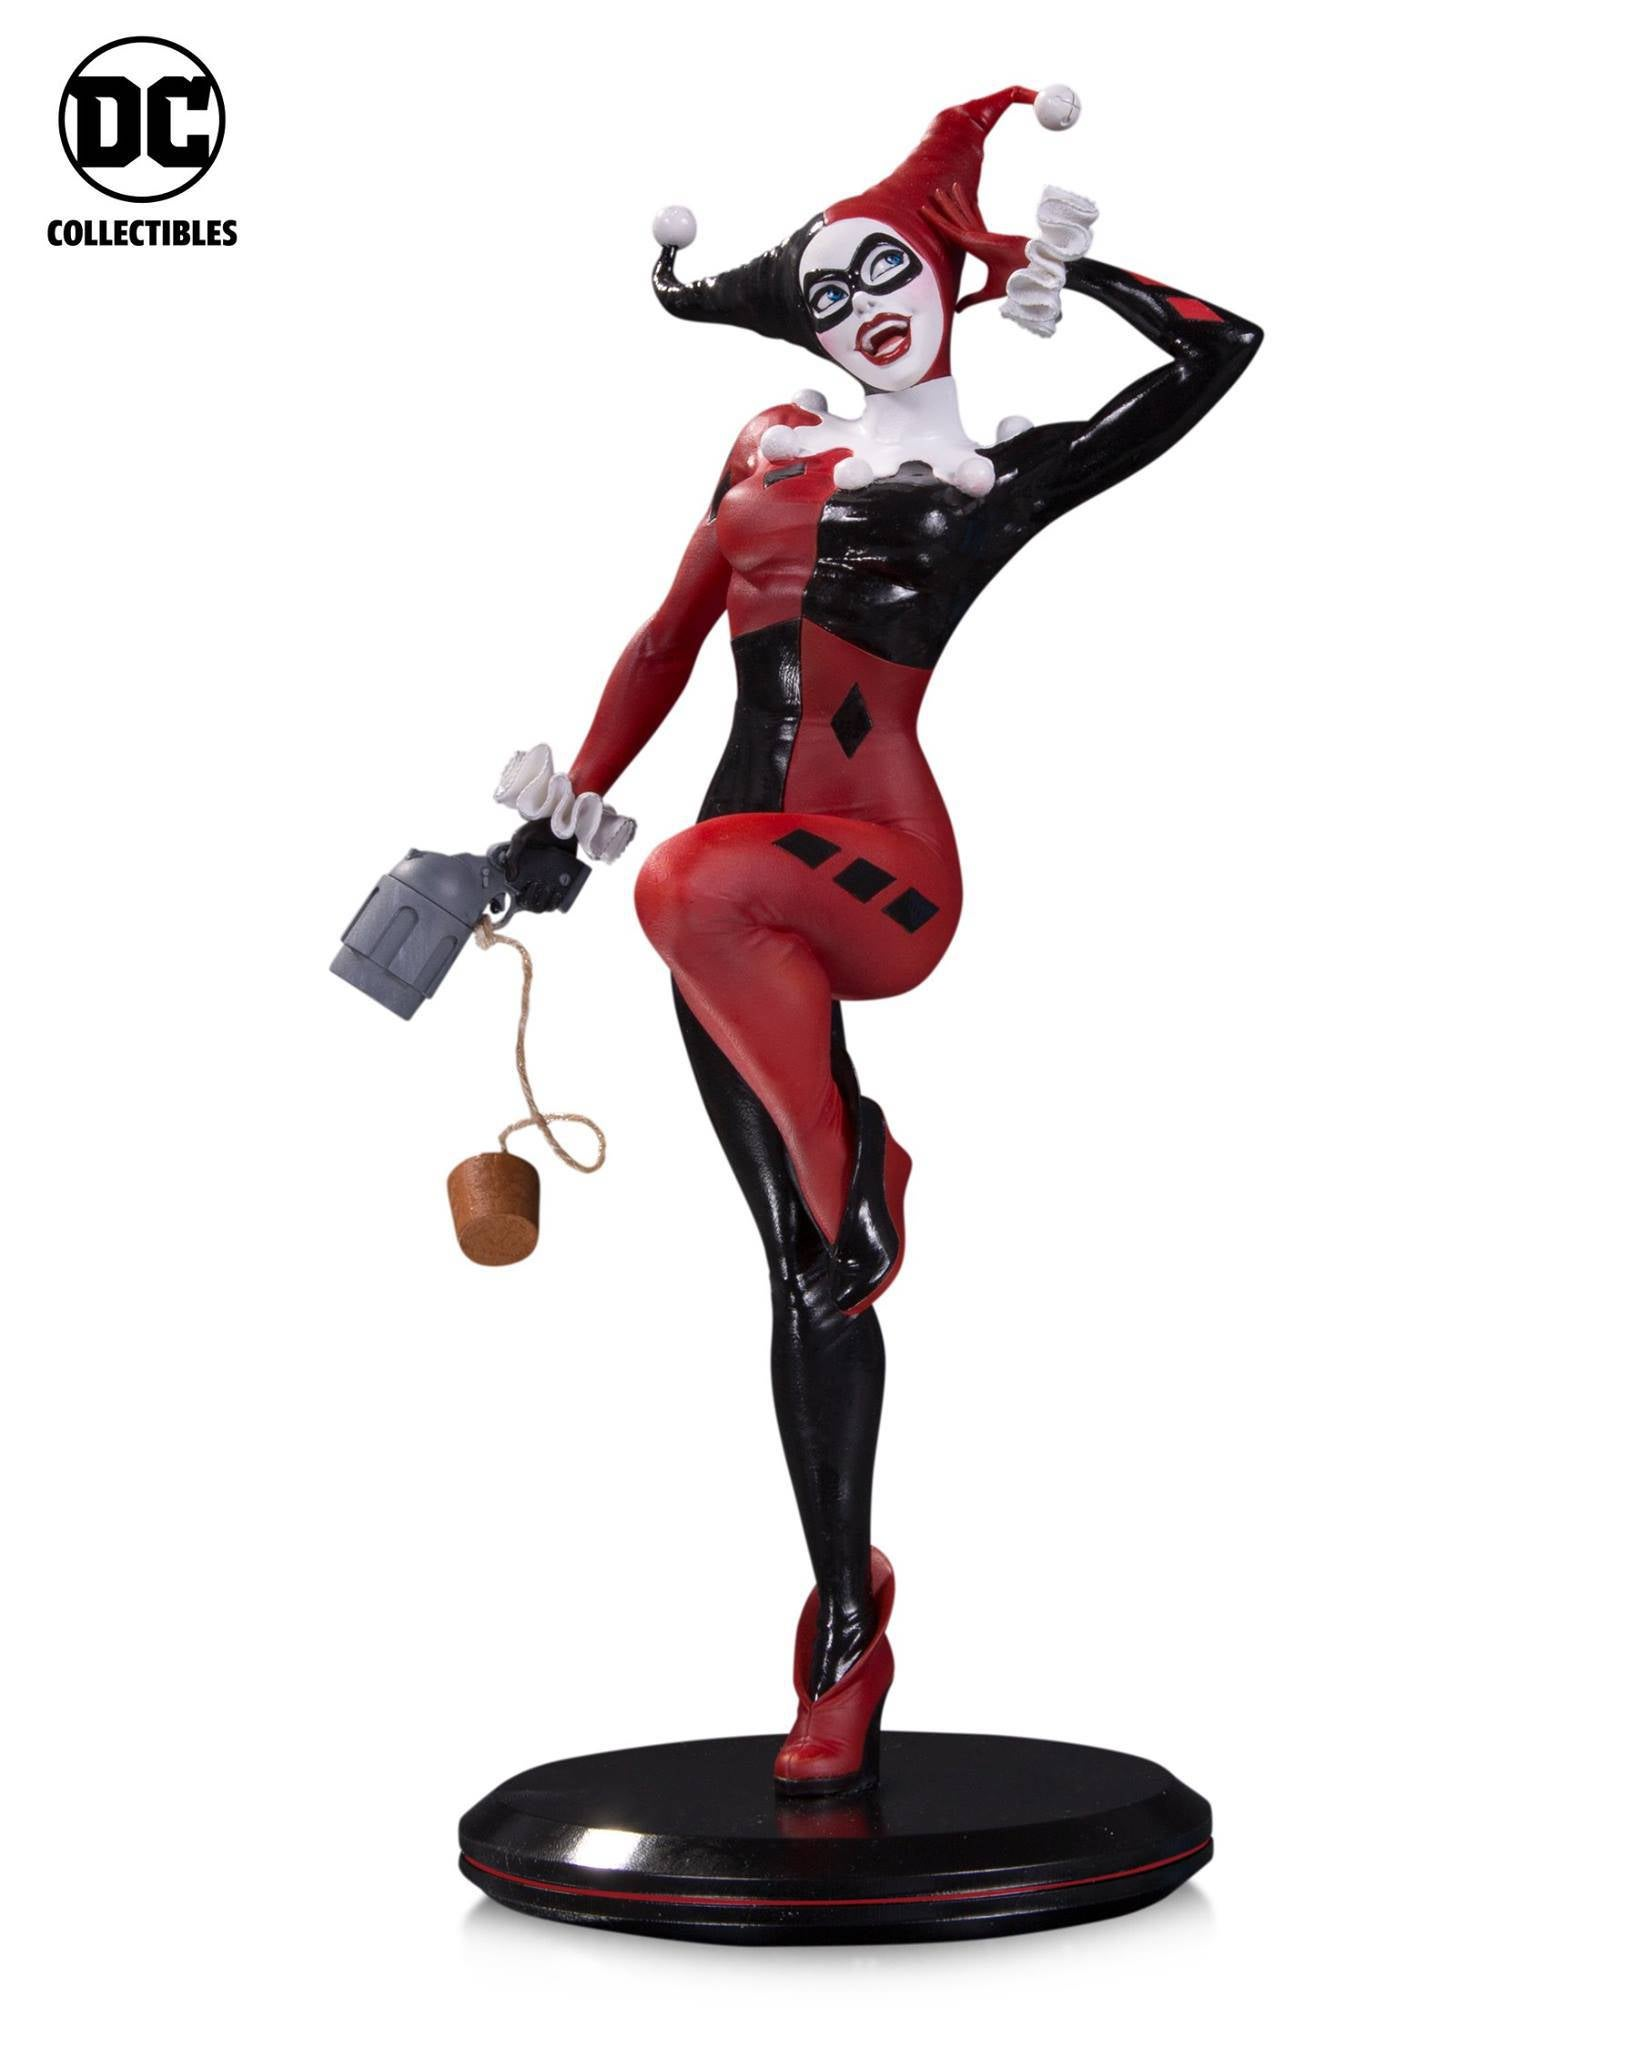 Dc Collectibles Reveals New Statues At Wondercon